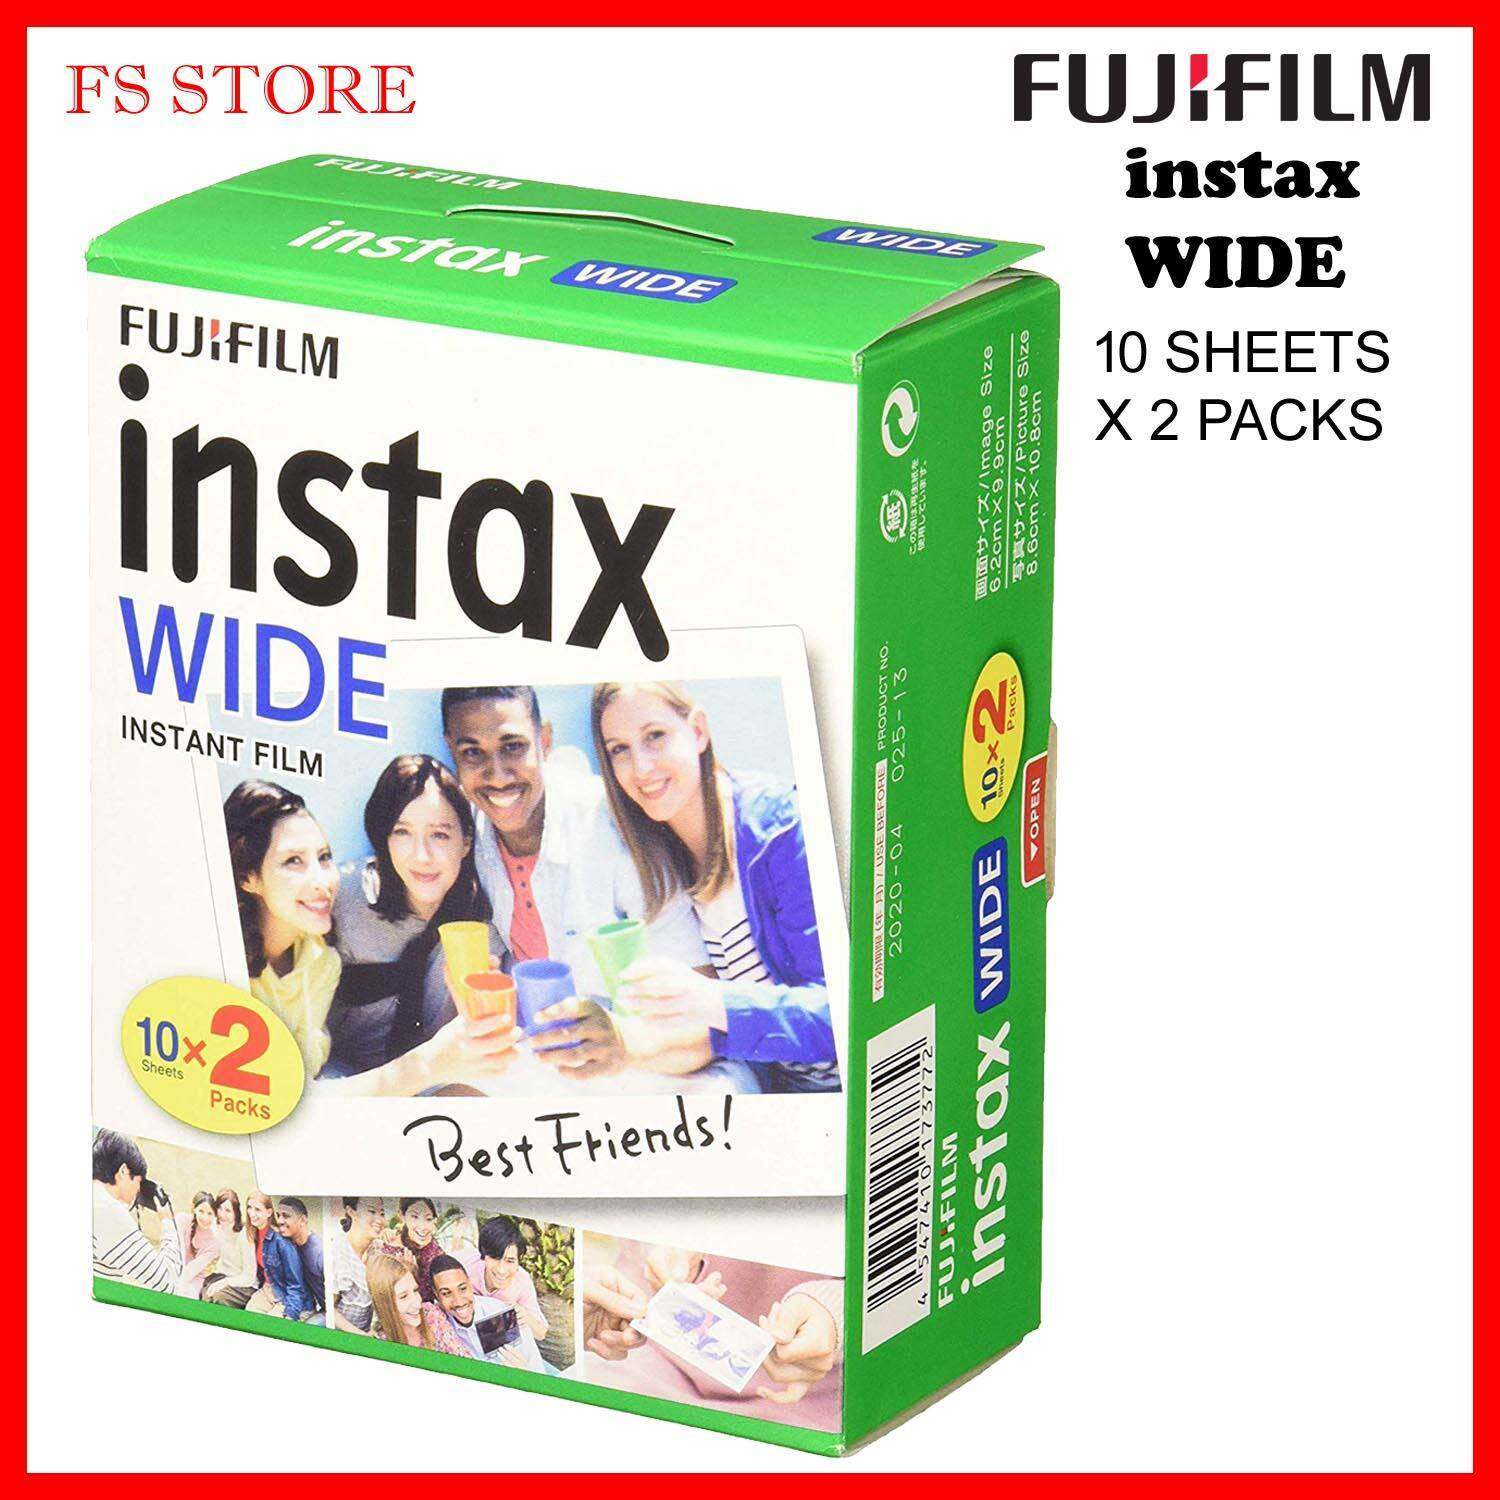 Fujifilm Original Malaysia Instax Wide Film Twin (10 Sheets X 2 Packs) Expired 03/ 2020 By Fs Store.